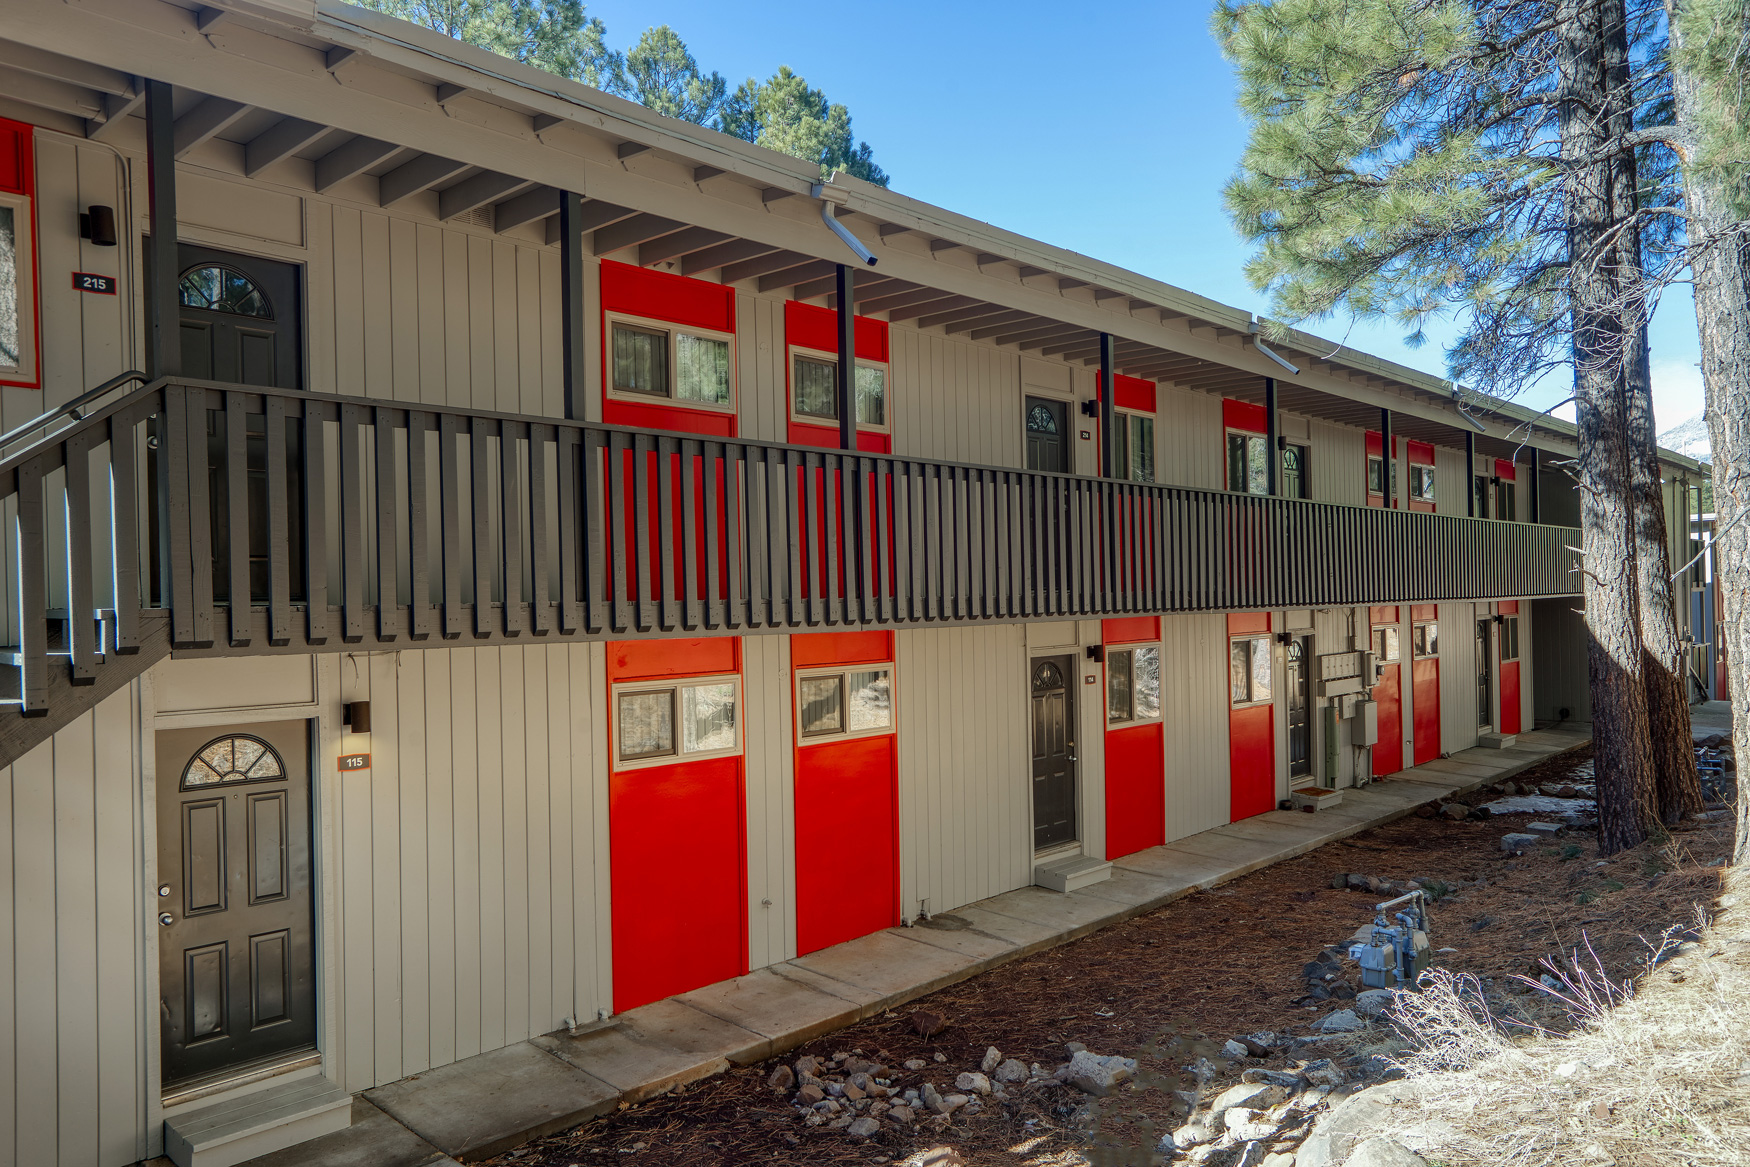 1, 2, and 3-Bedroom Apartments for Rent at Blk. Mtn. Lofts Apartments in Flagstaff, Arizona